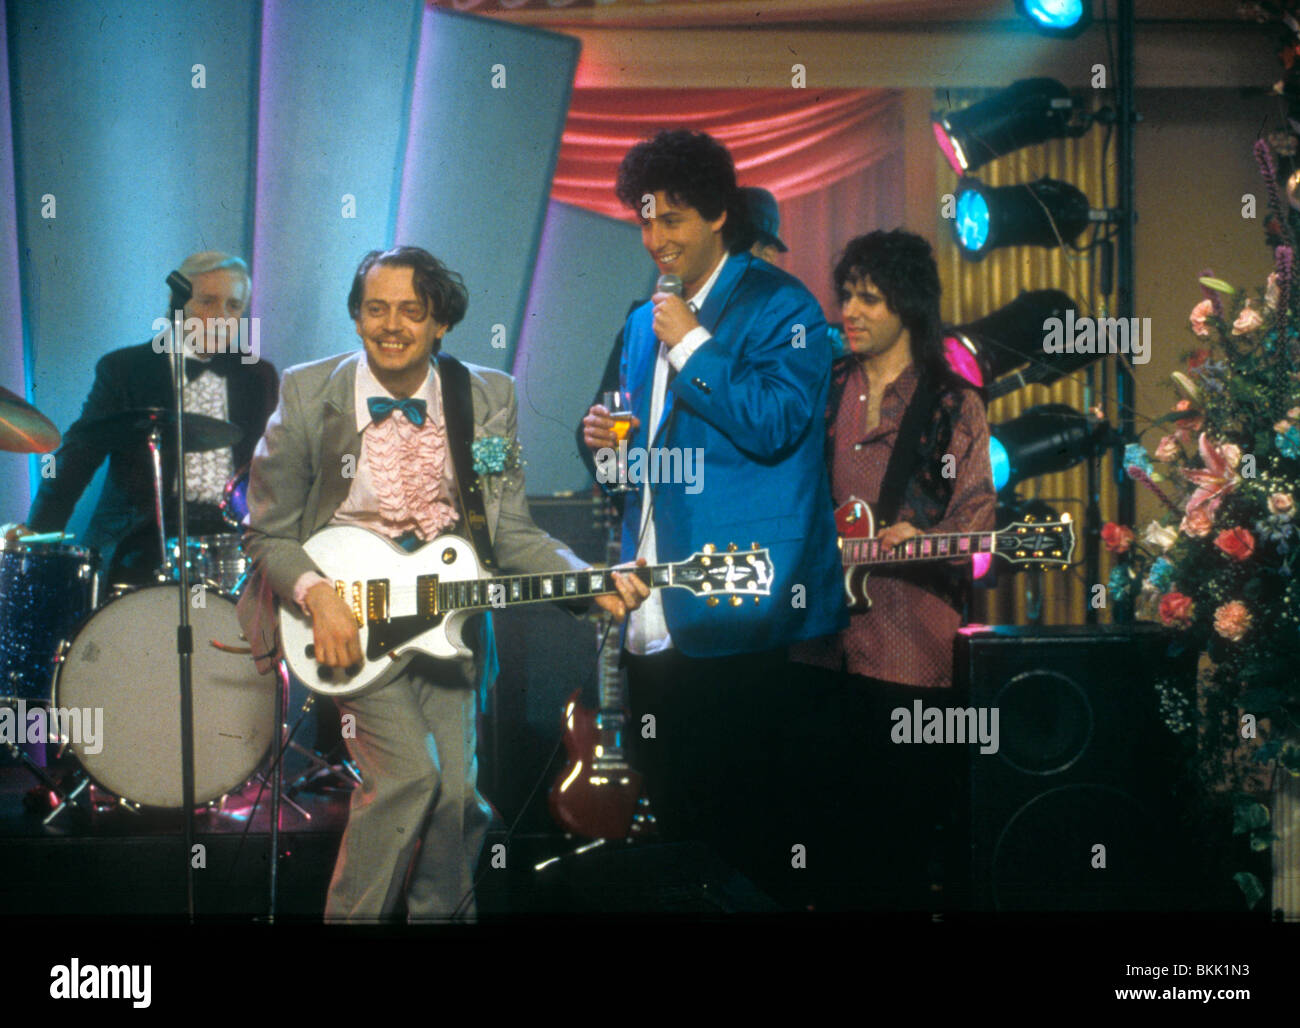 THE WEDDING SINGER 1998 STEVE BUSCEMI ADAM SANDLER WDDS 016